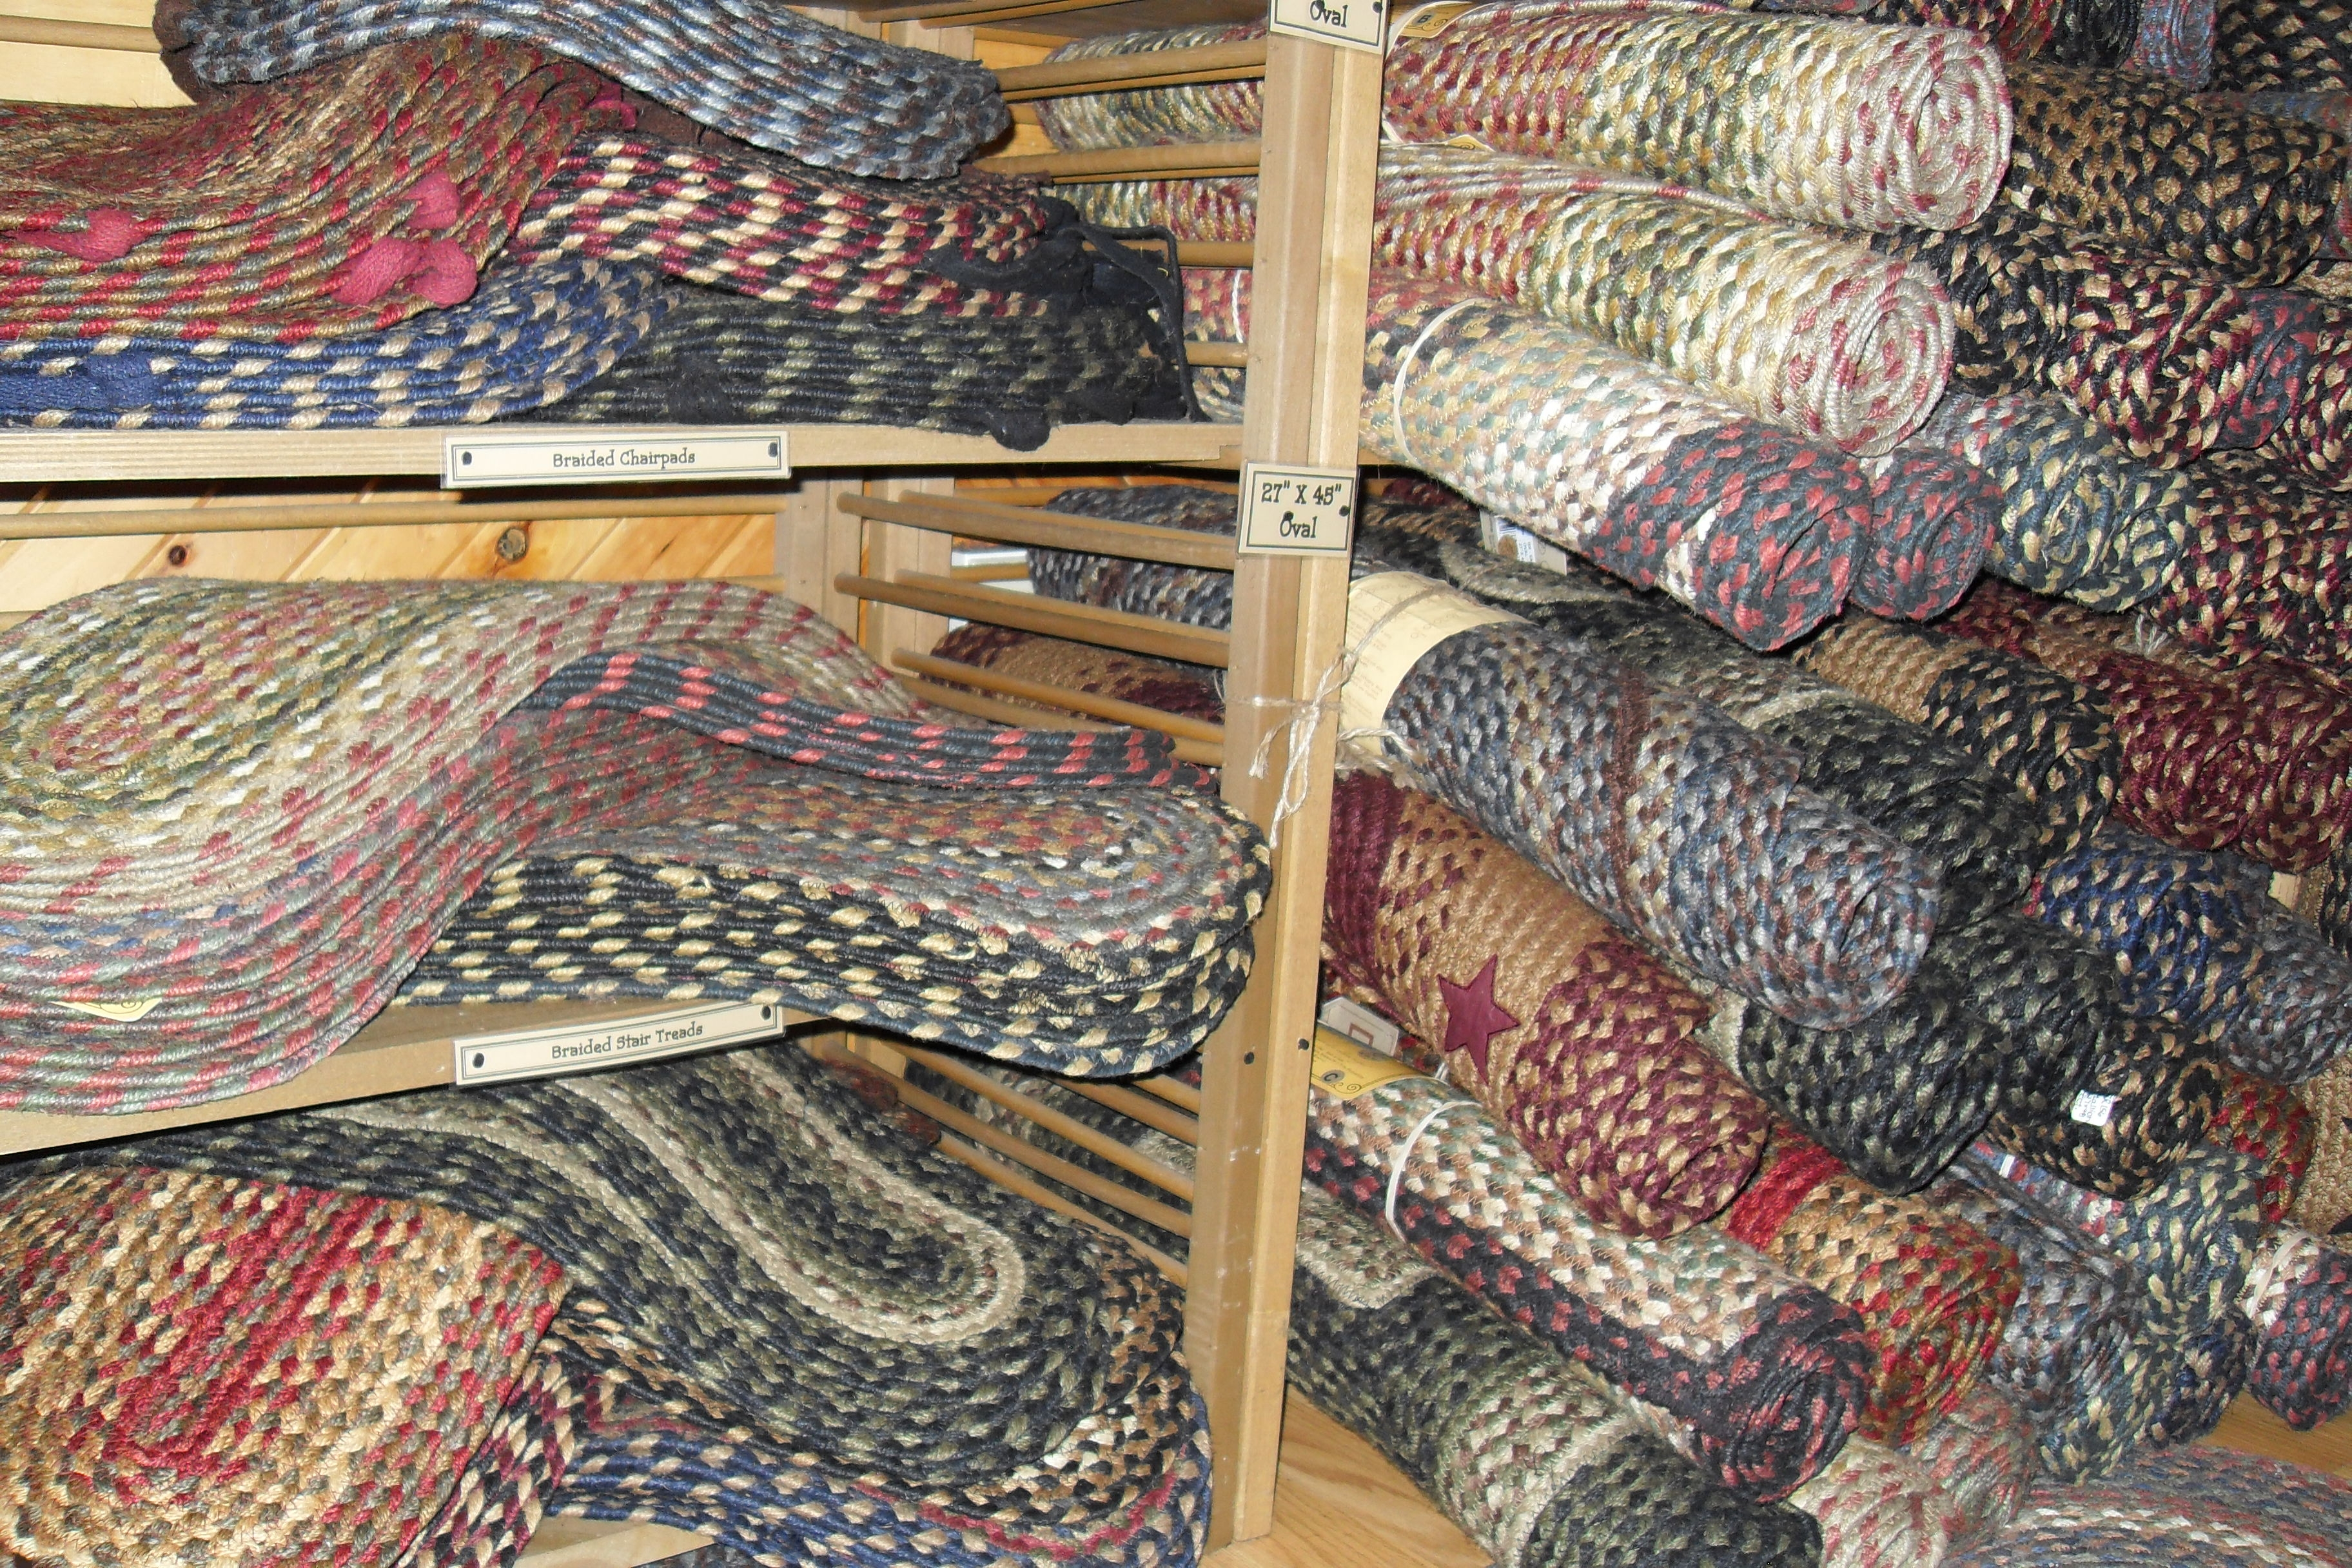 Braided Stair Tread Rugs Roselawnlutheran For Country Stair Tread Rugs (Image 2 of 15)